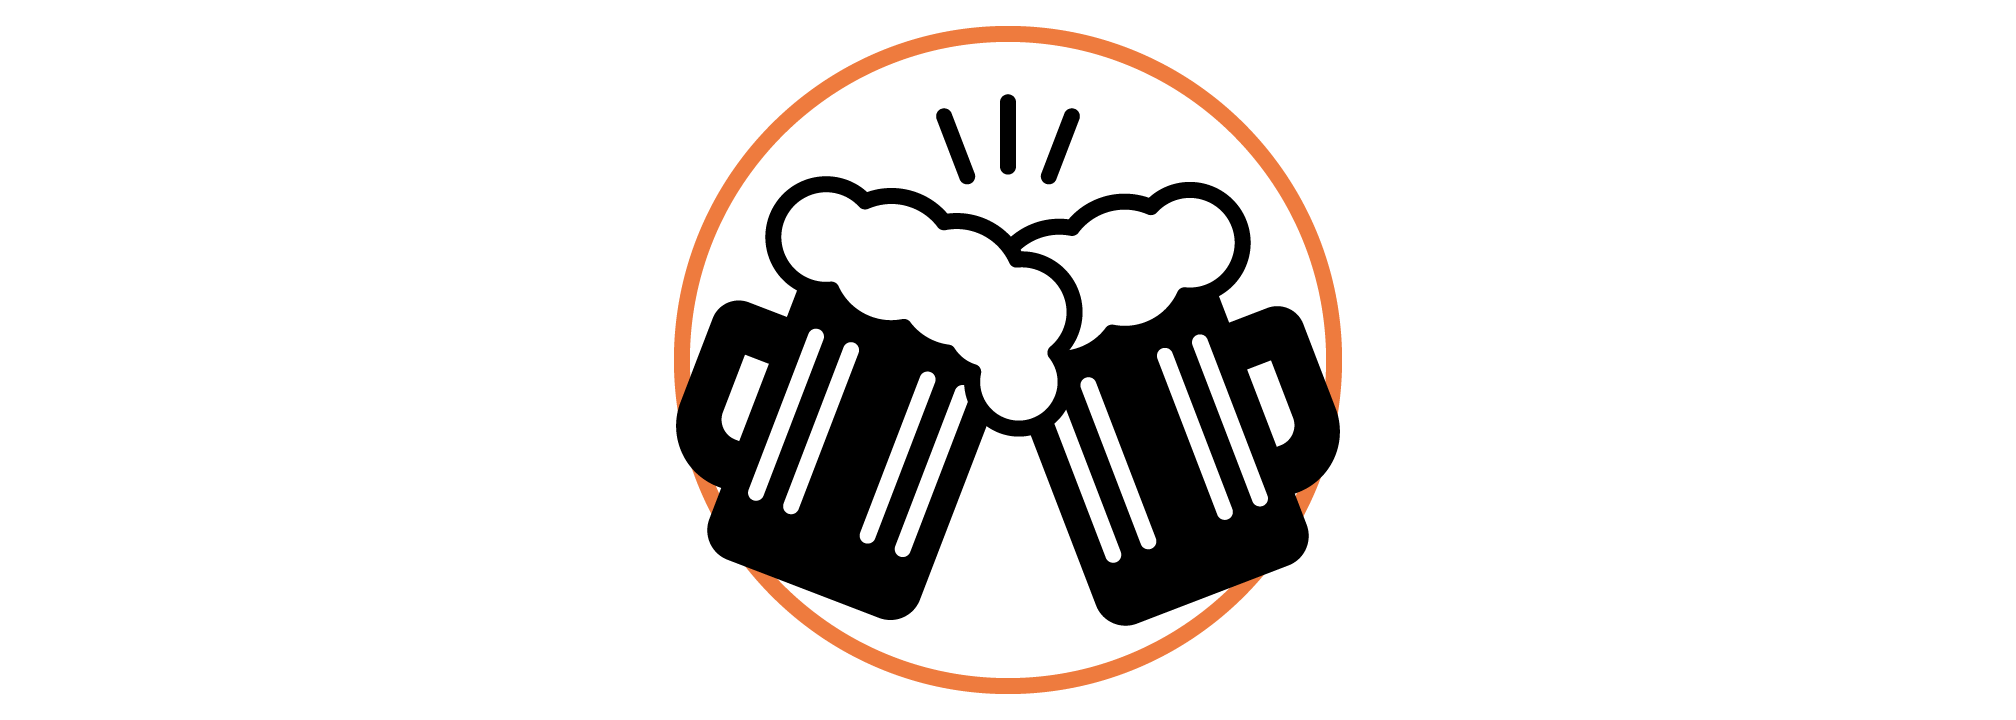 icon-beers-ios-black-filled.png